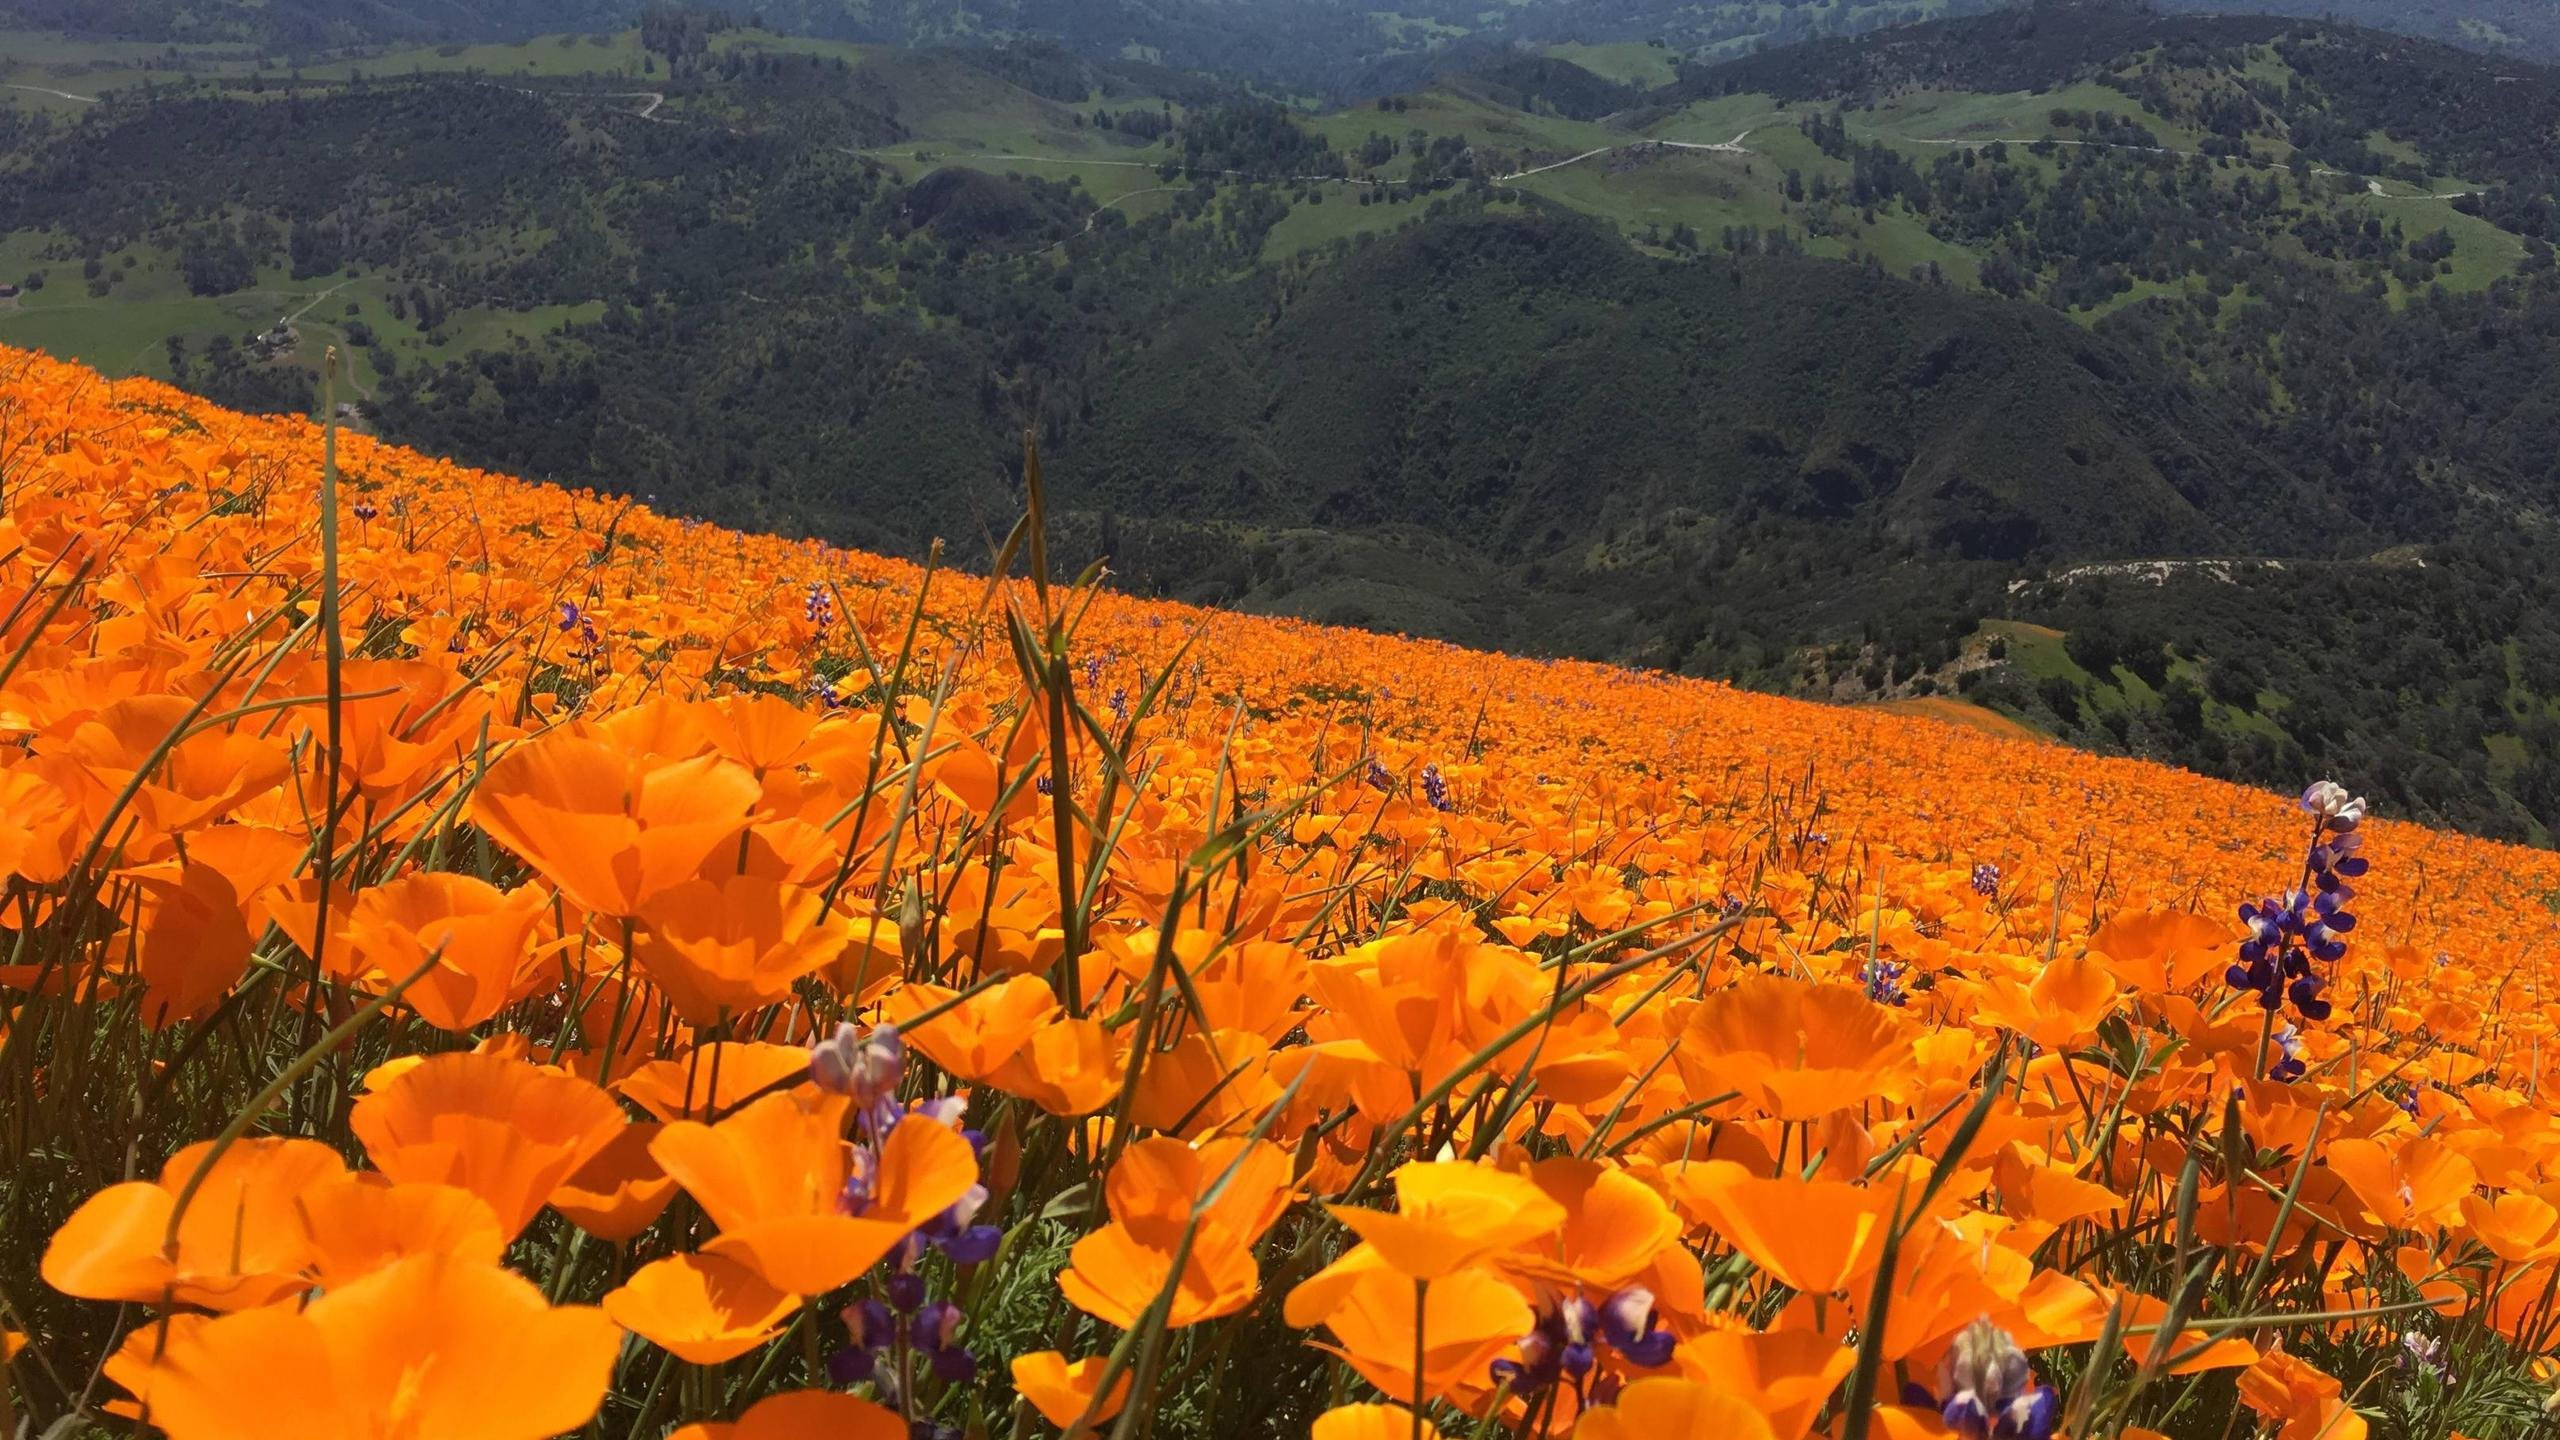 Wild Poppies at Grass Mountain Los Olivos CA wallpaper